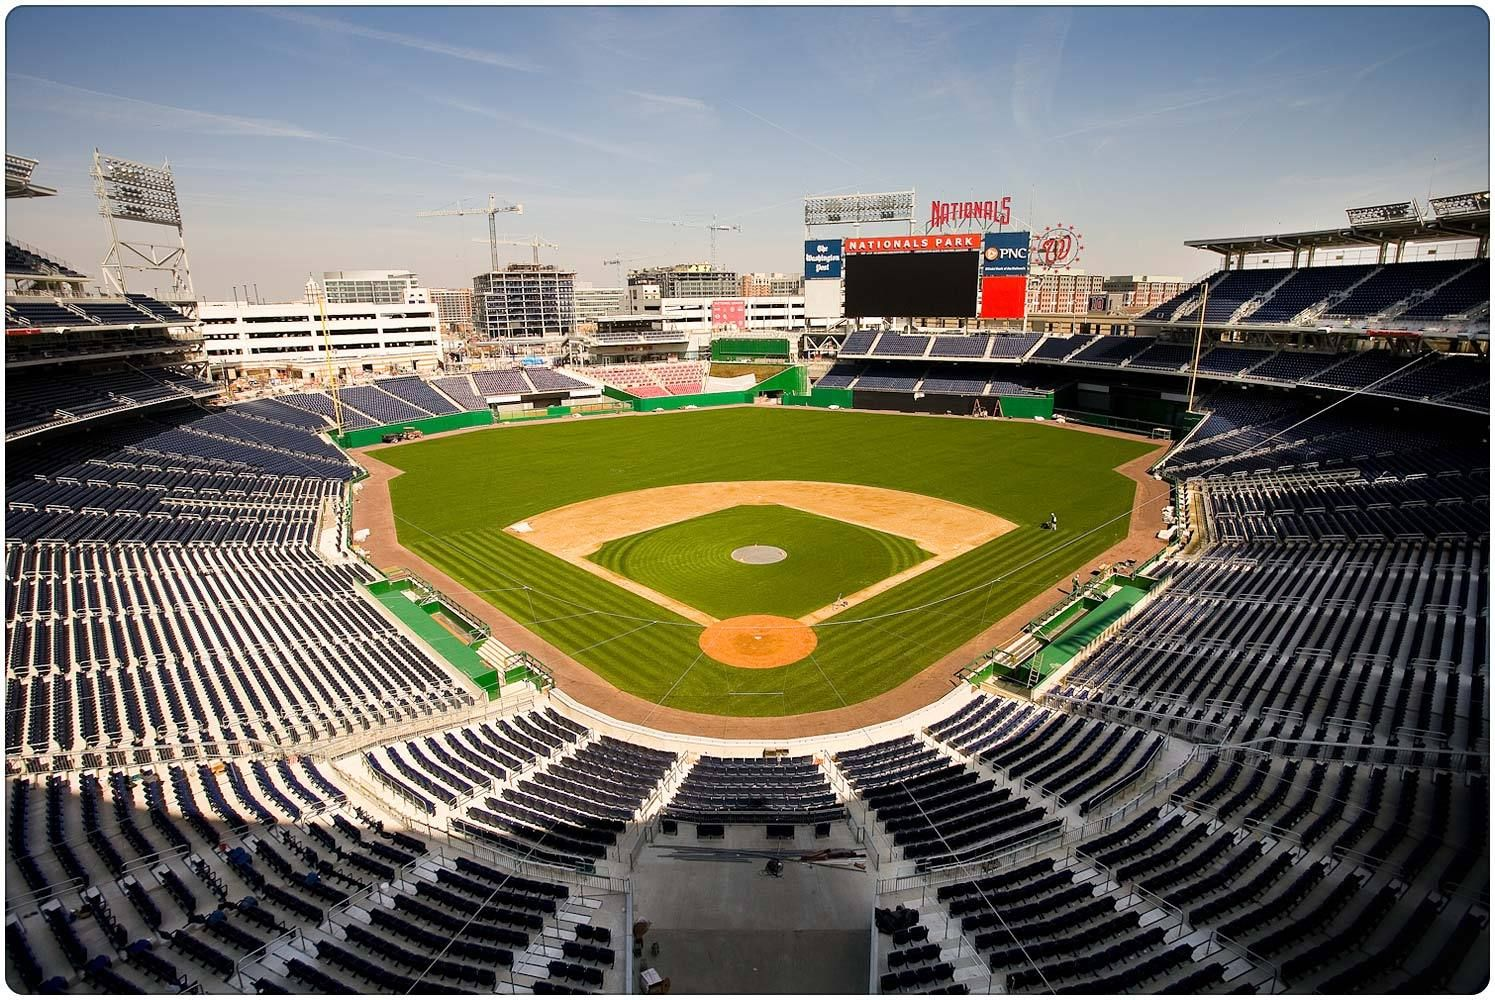 Top 10 Companies In Usa For Business Job Software And More Top 10 Largest Baseball Stadium In Usa Baseball Stadium Stadium Baseball